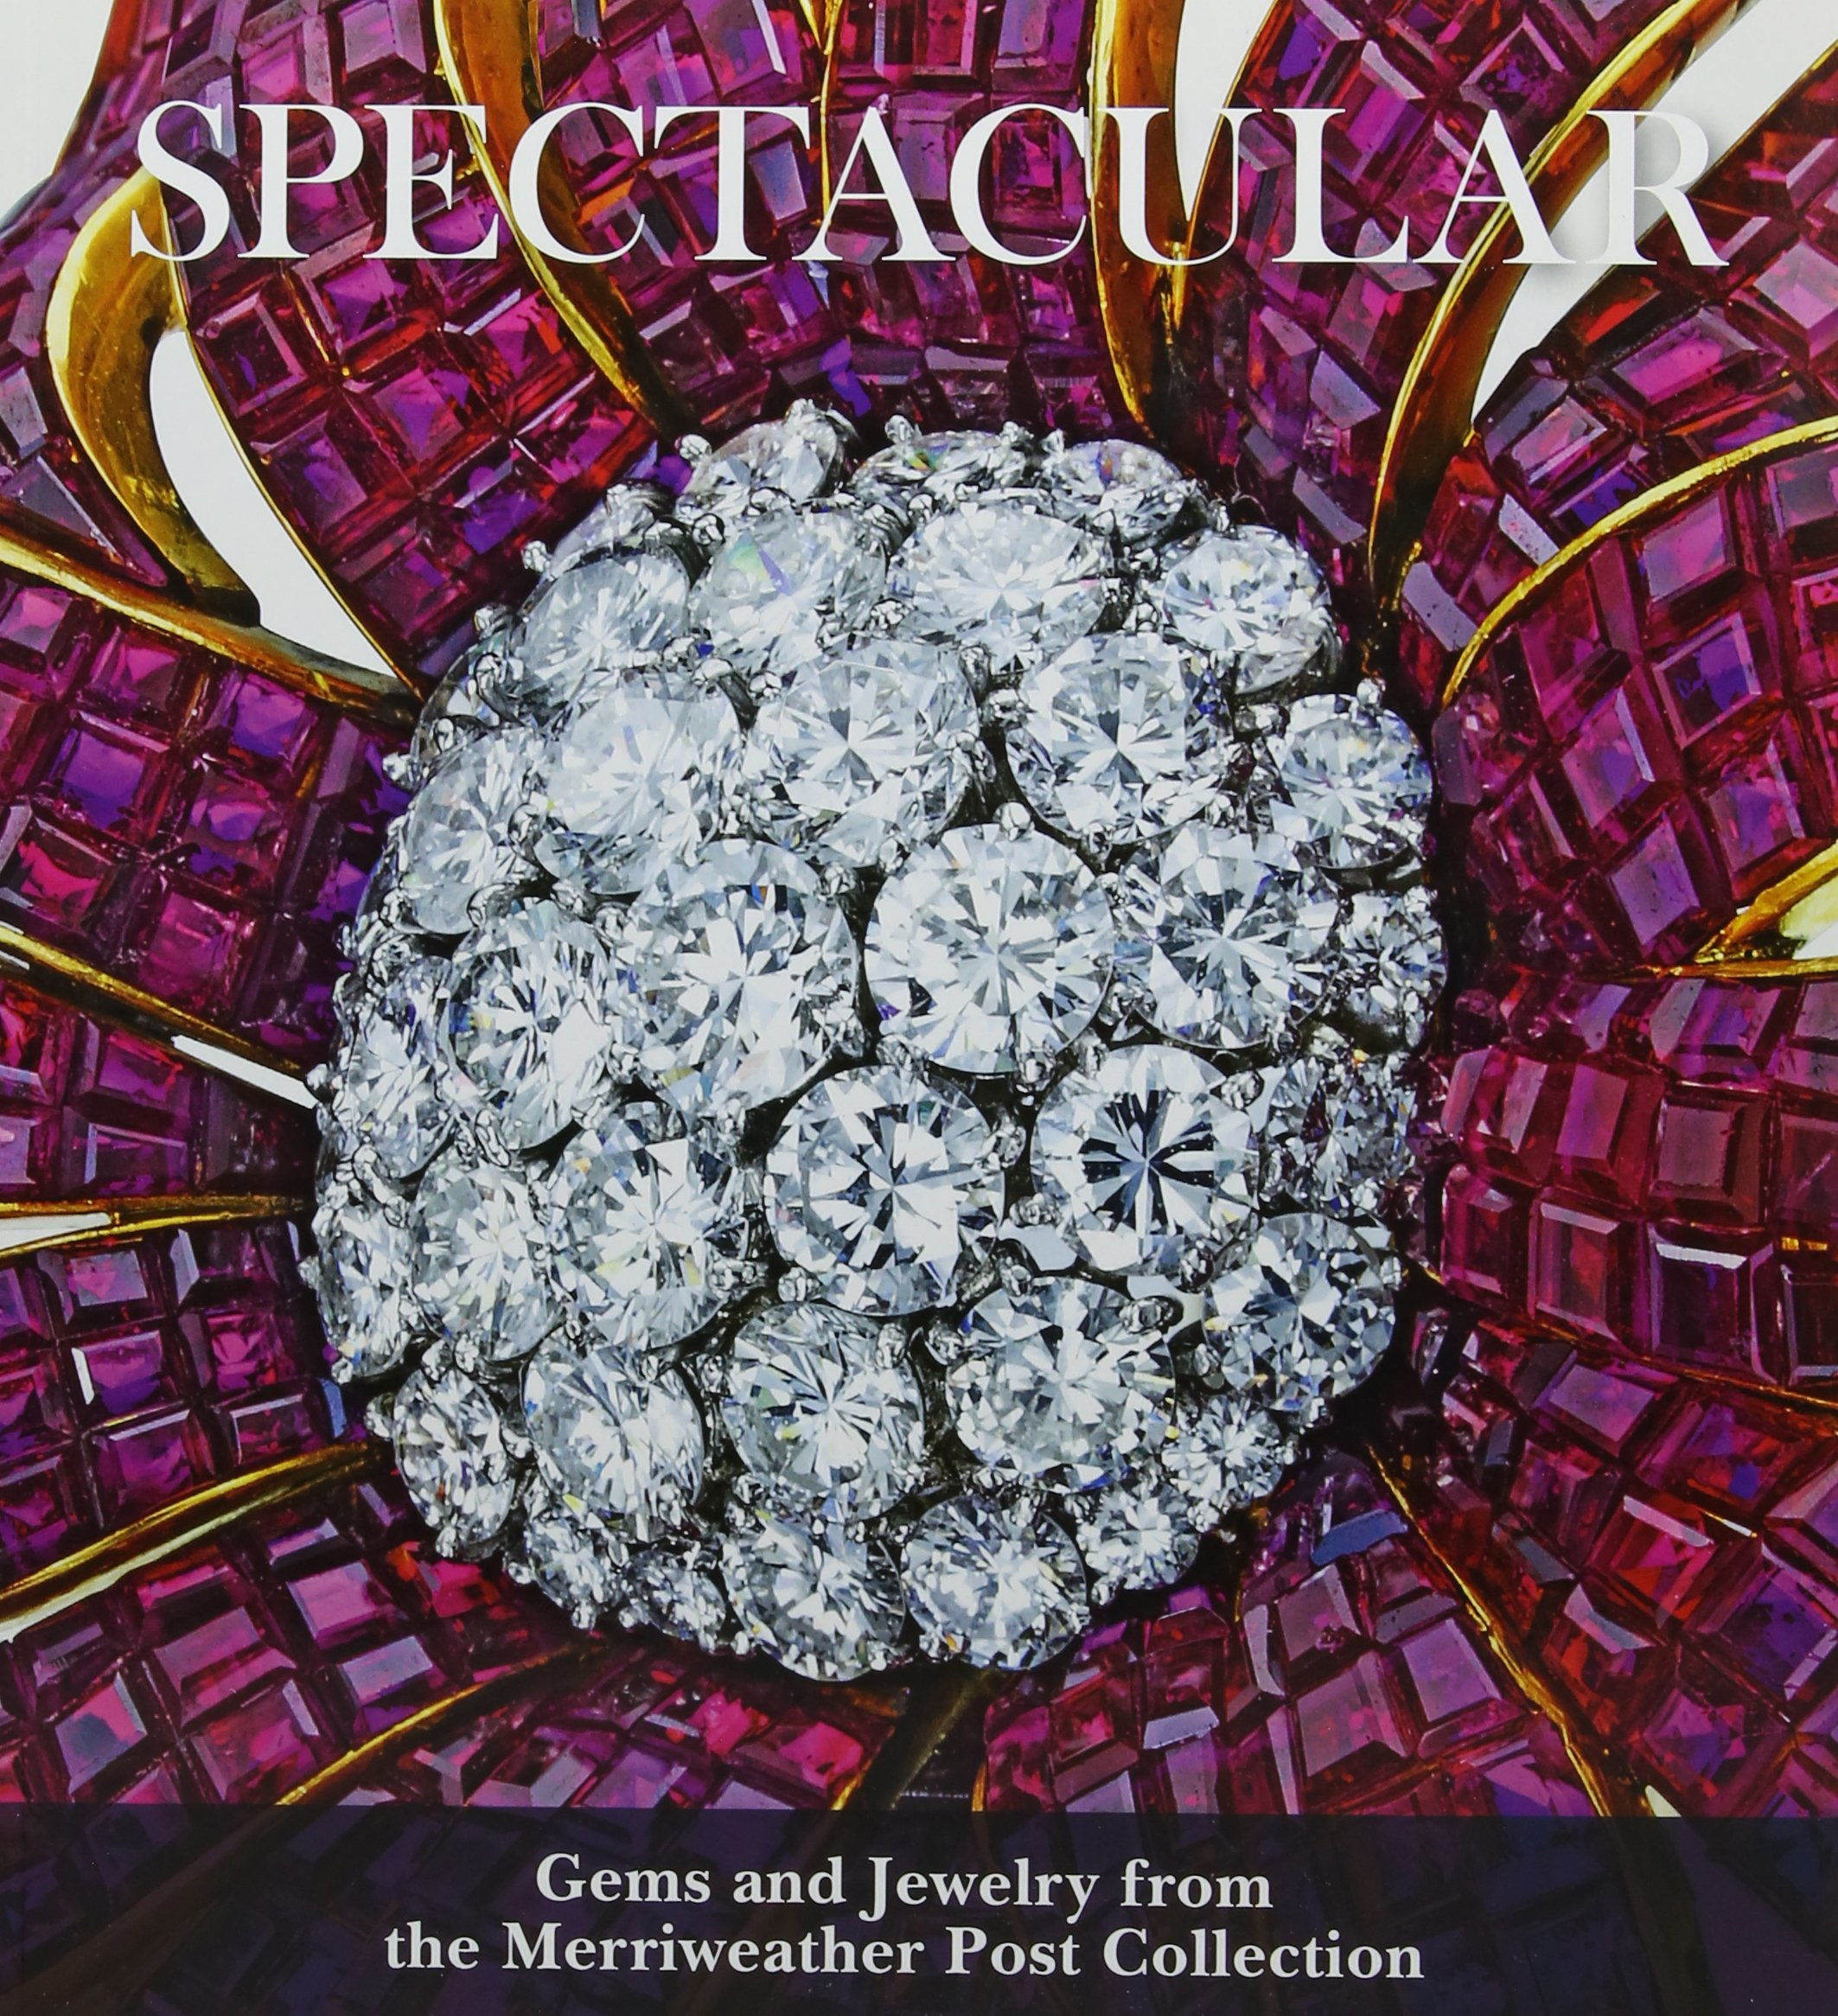 Download Spectacular: Gems and Jewelry from the Merriweather Post Collection PDF